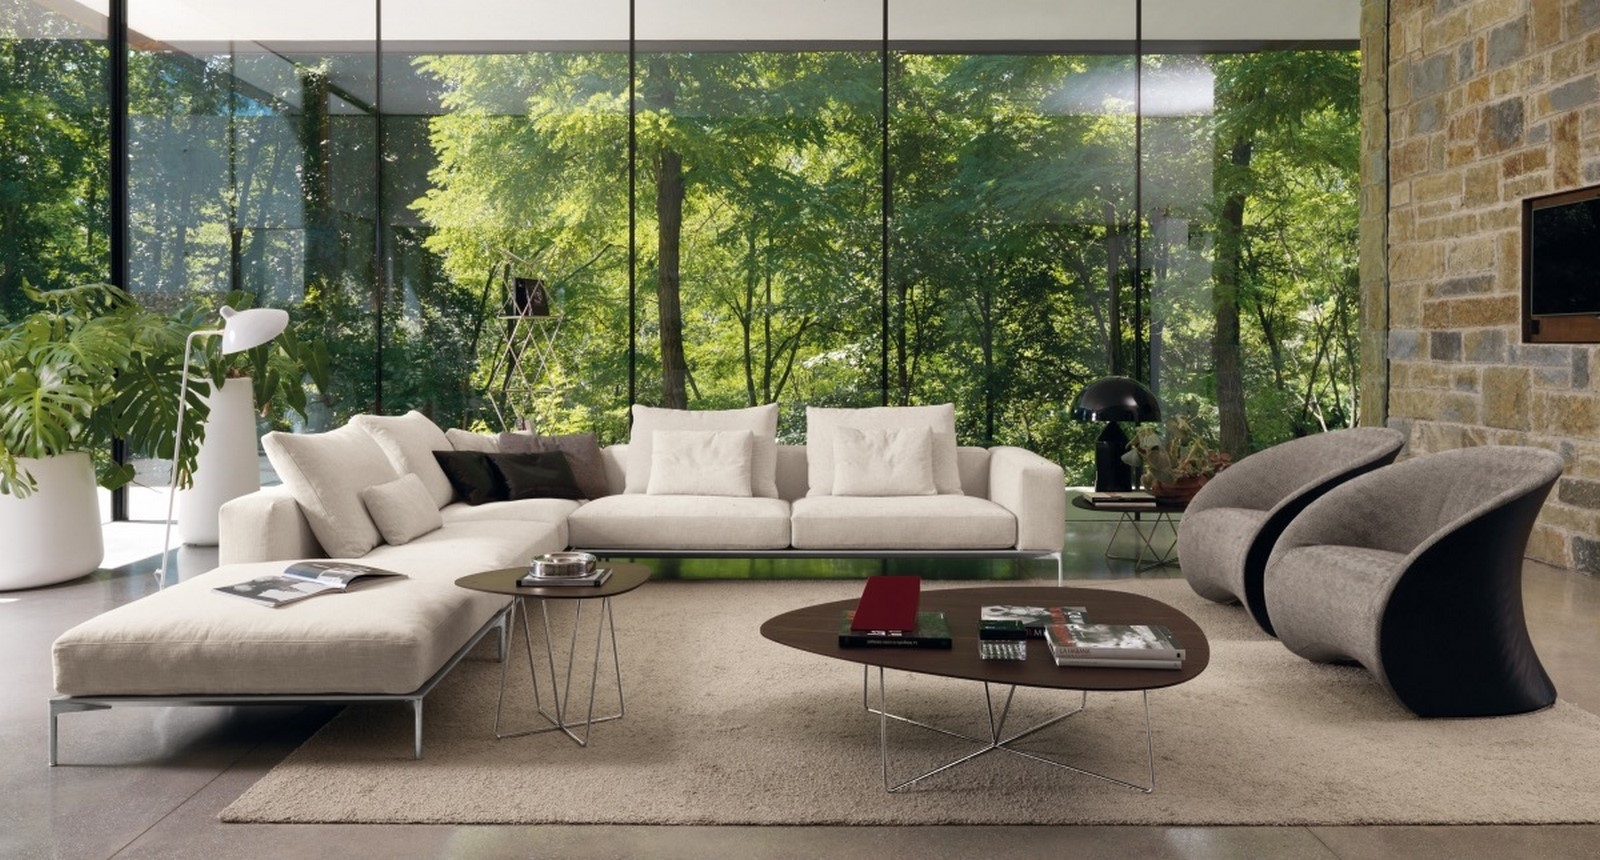 How to enhance Soft Furnishing Aesthetics in your house? - Sheet1